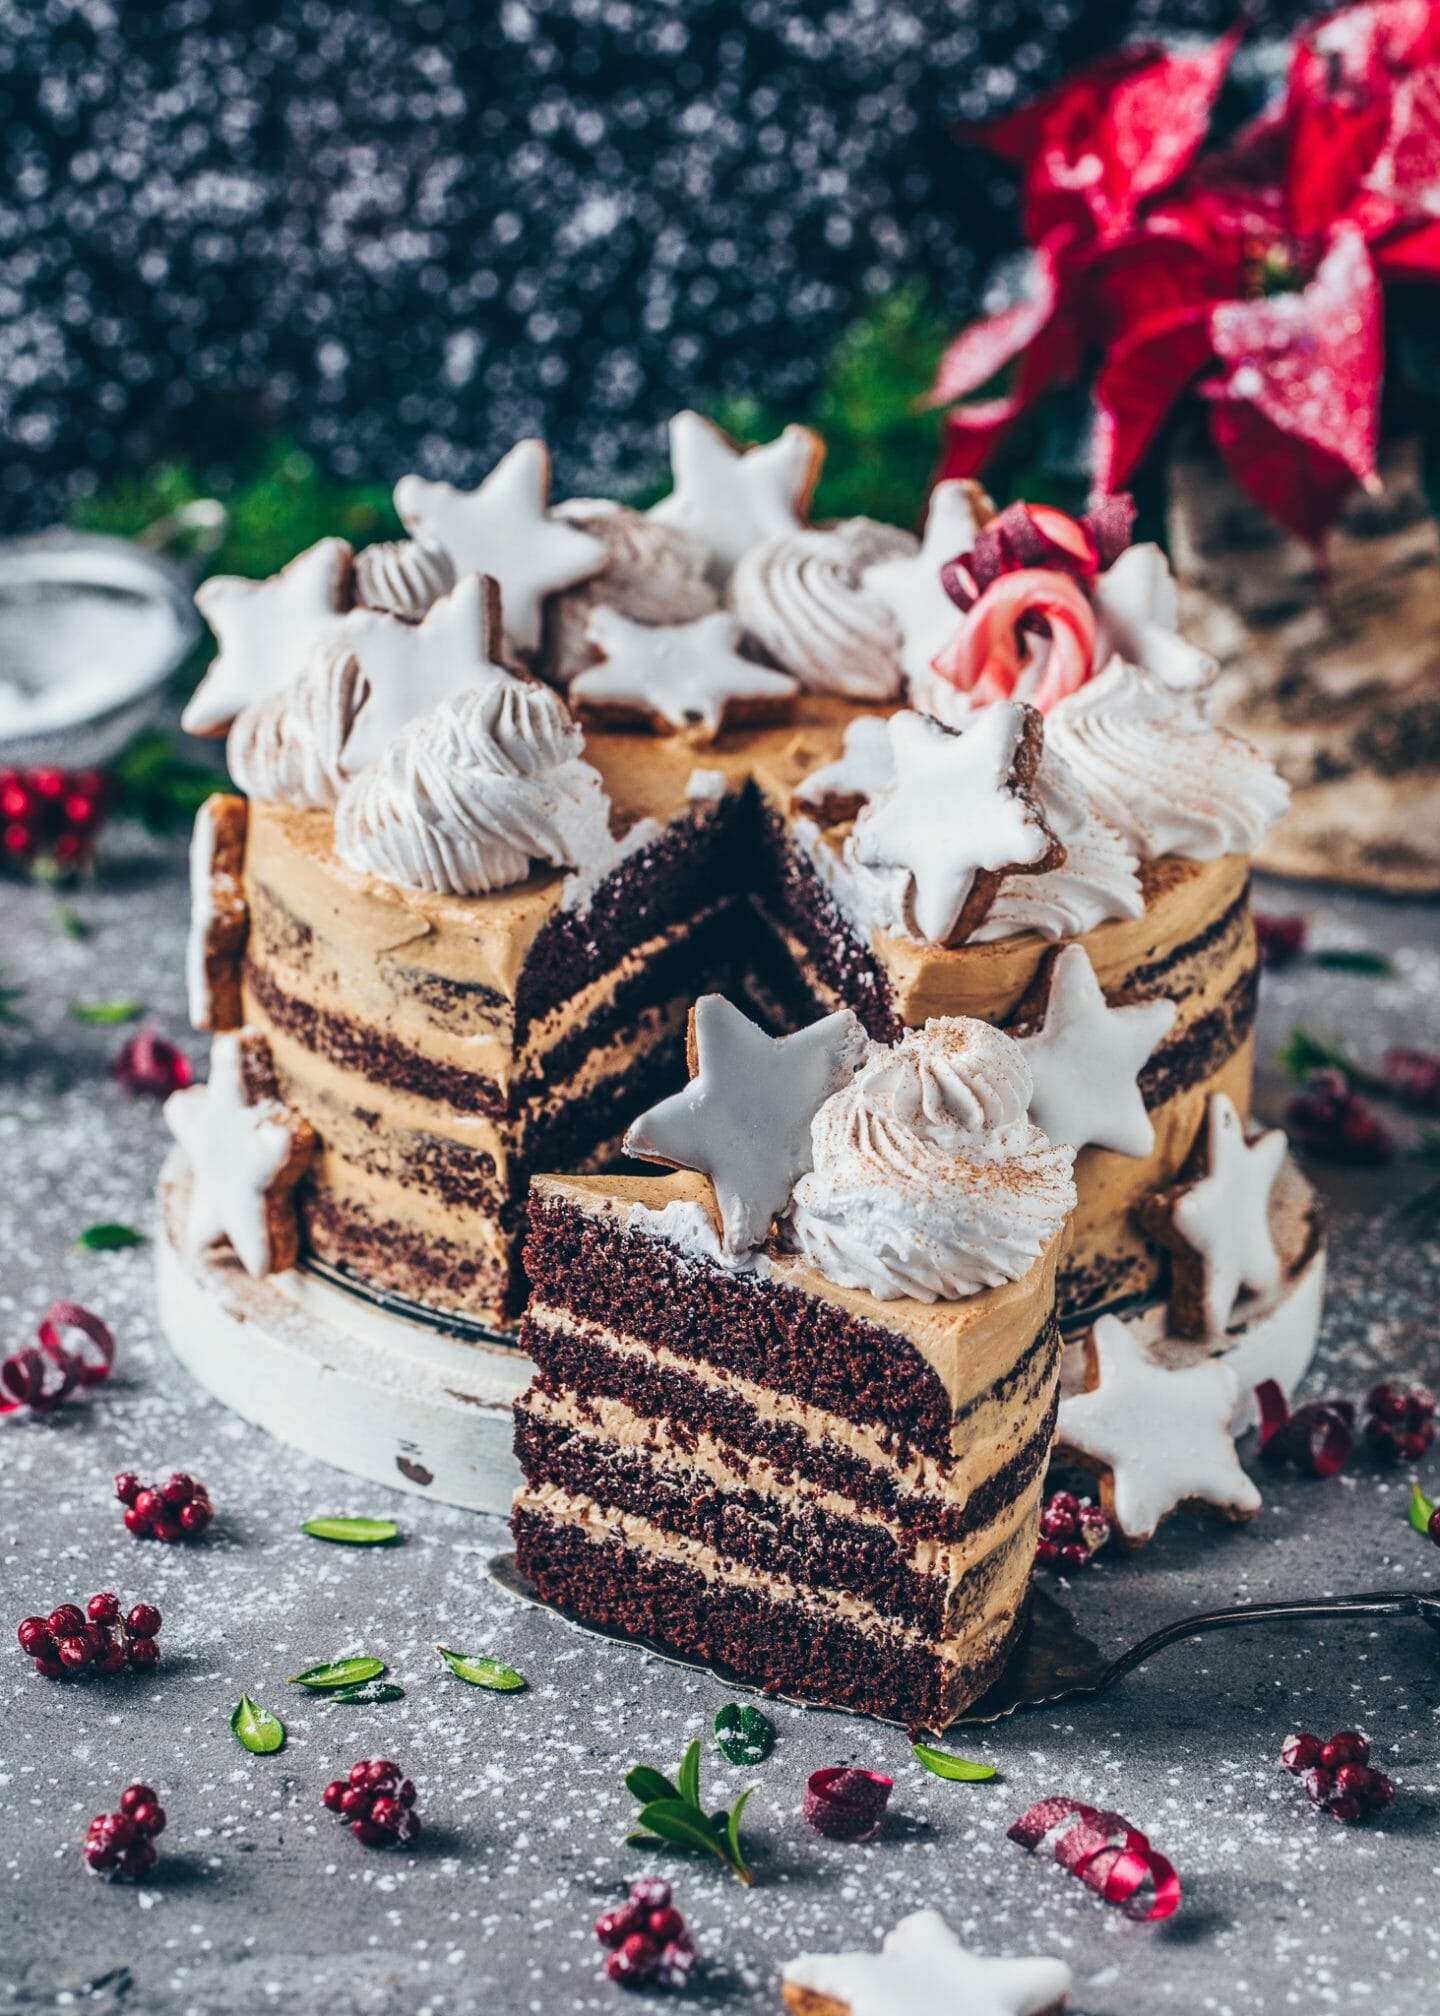 Chocolate Cookie Butter Cake with Cinnamon Stars